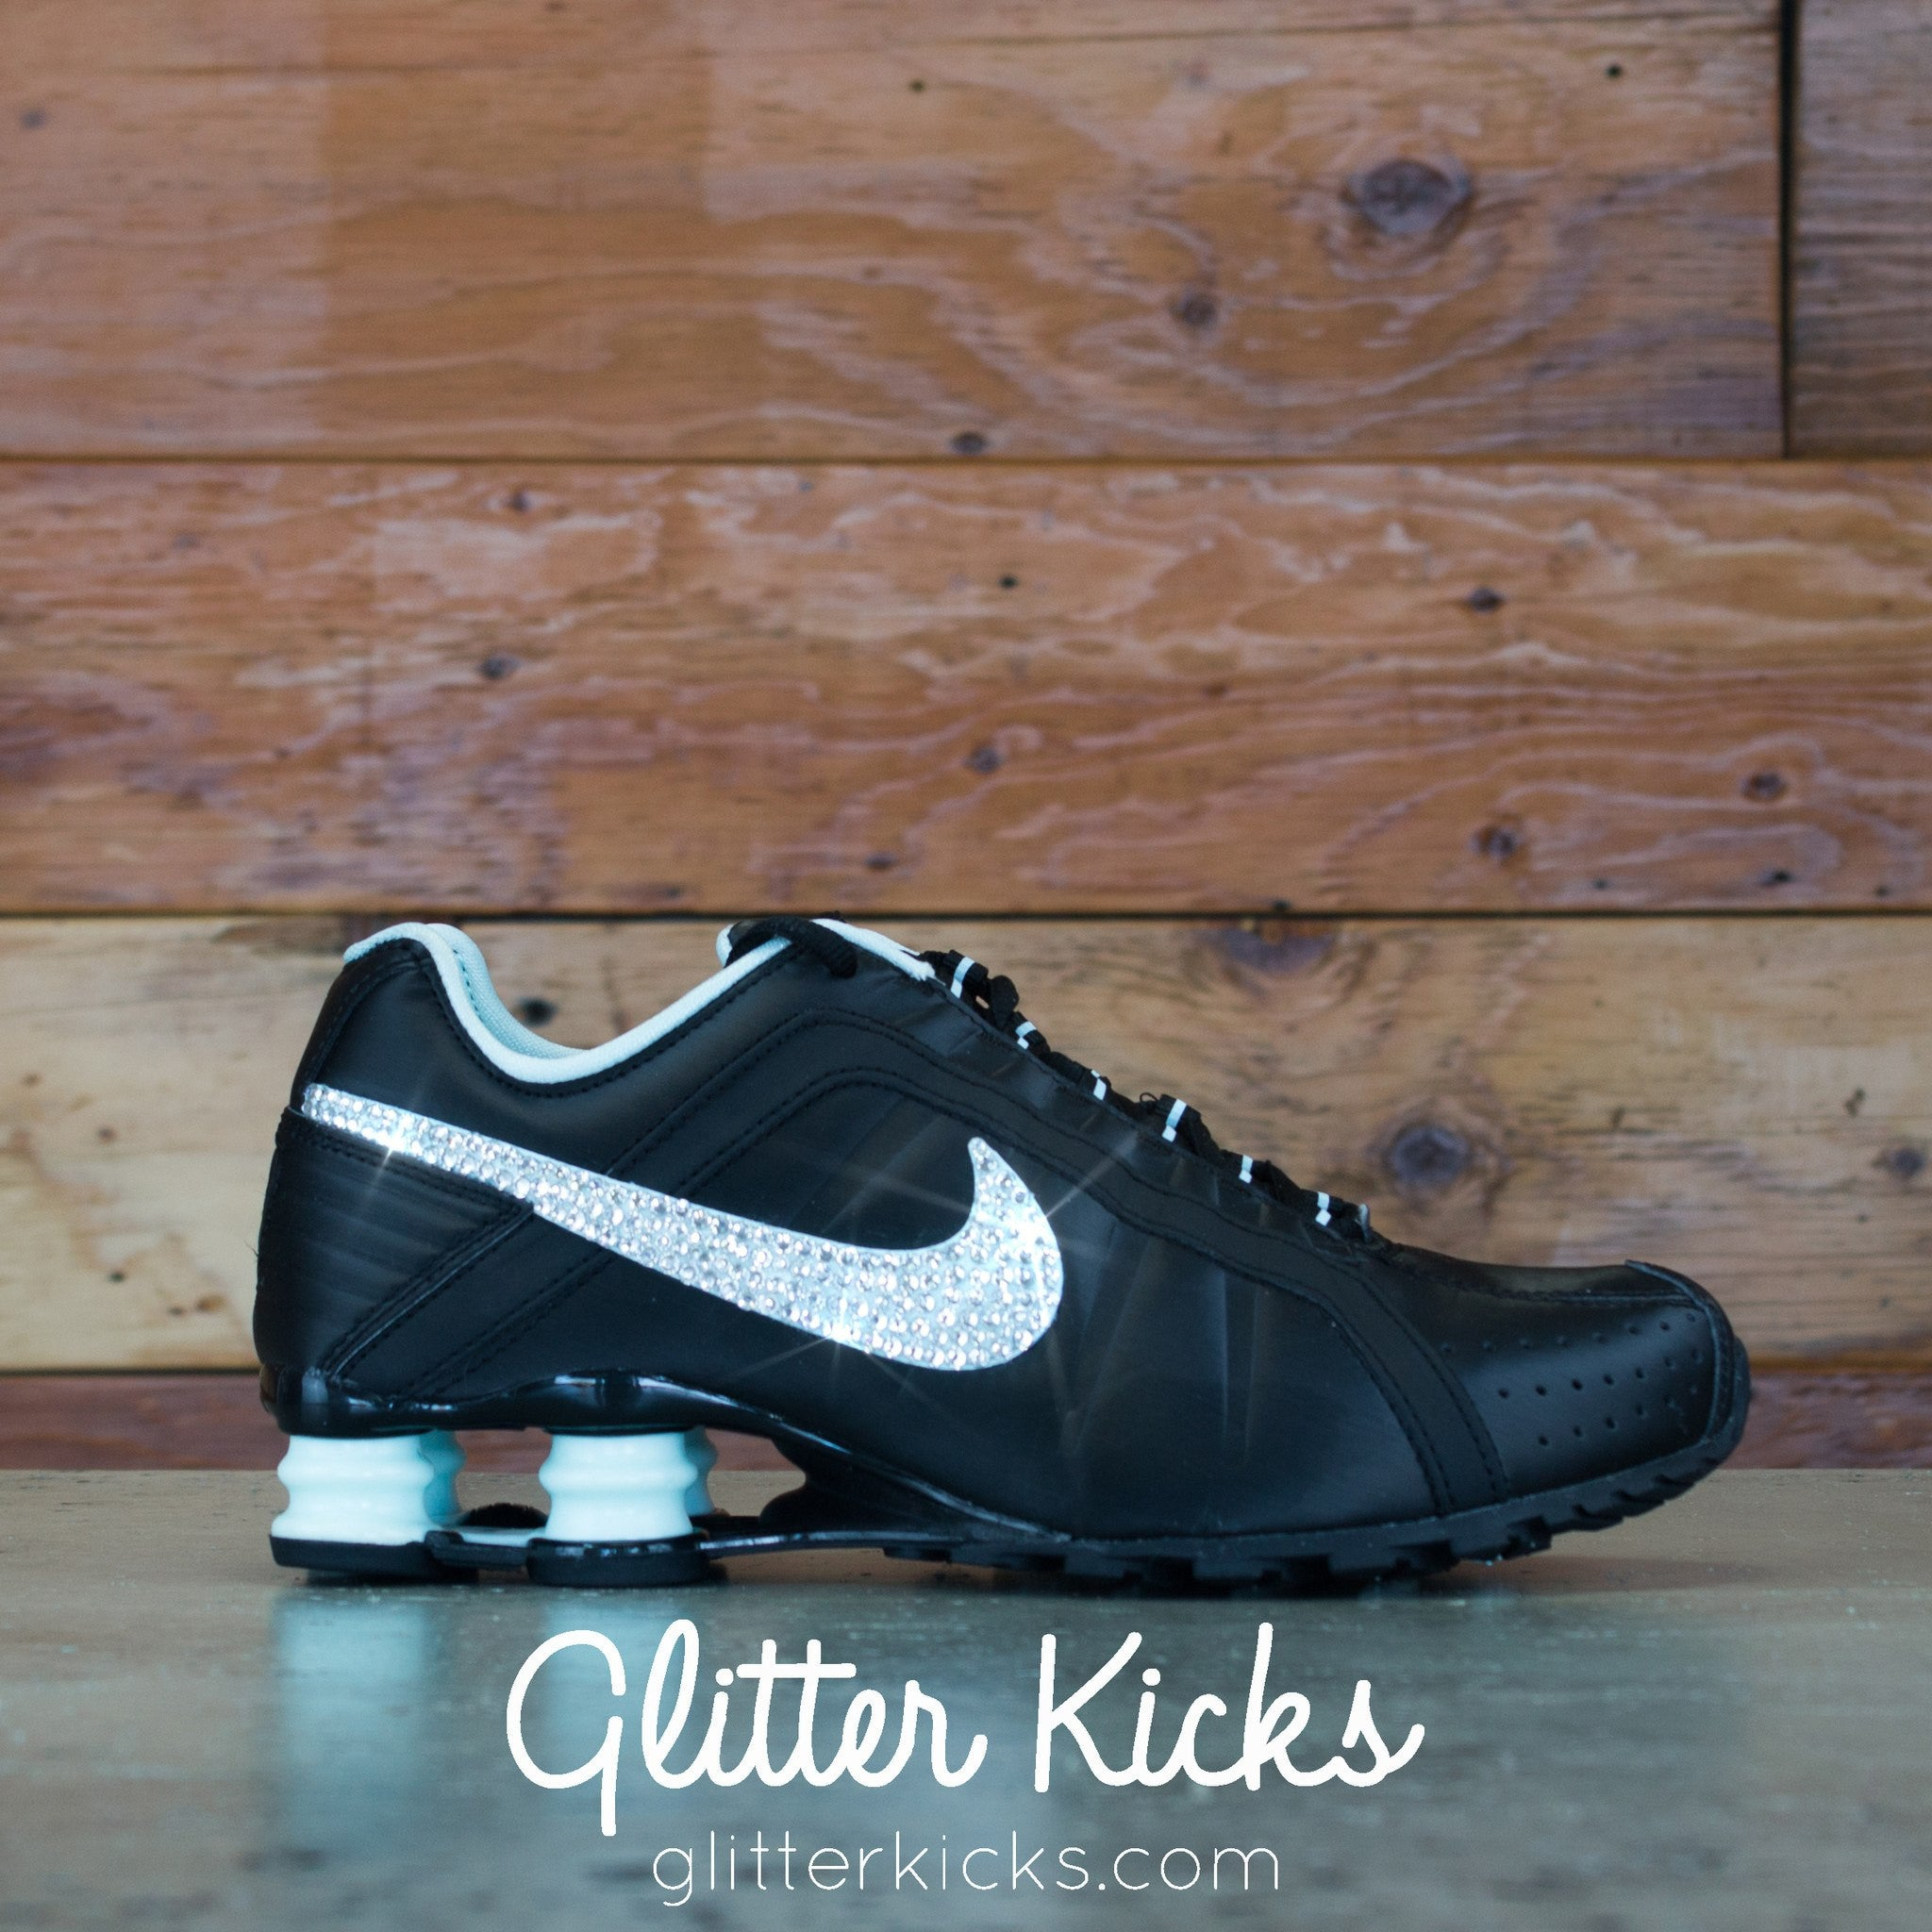 Nike Shoes With Glitter Swoosh Nike Lunarelite Sky Hi Snkrbt Womens ... 5cfefb483